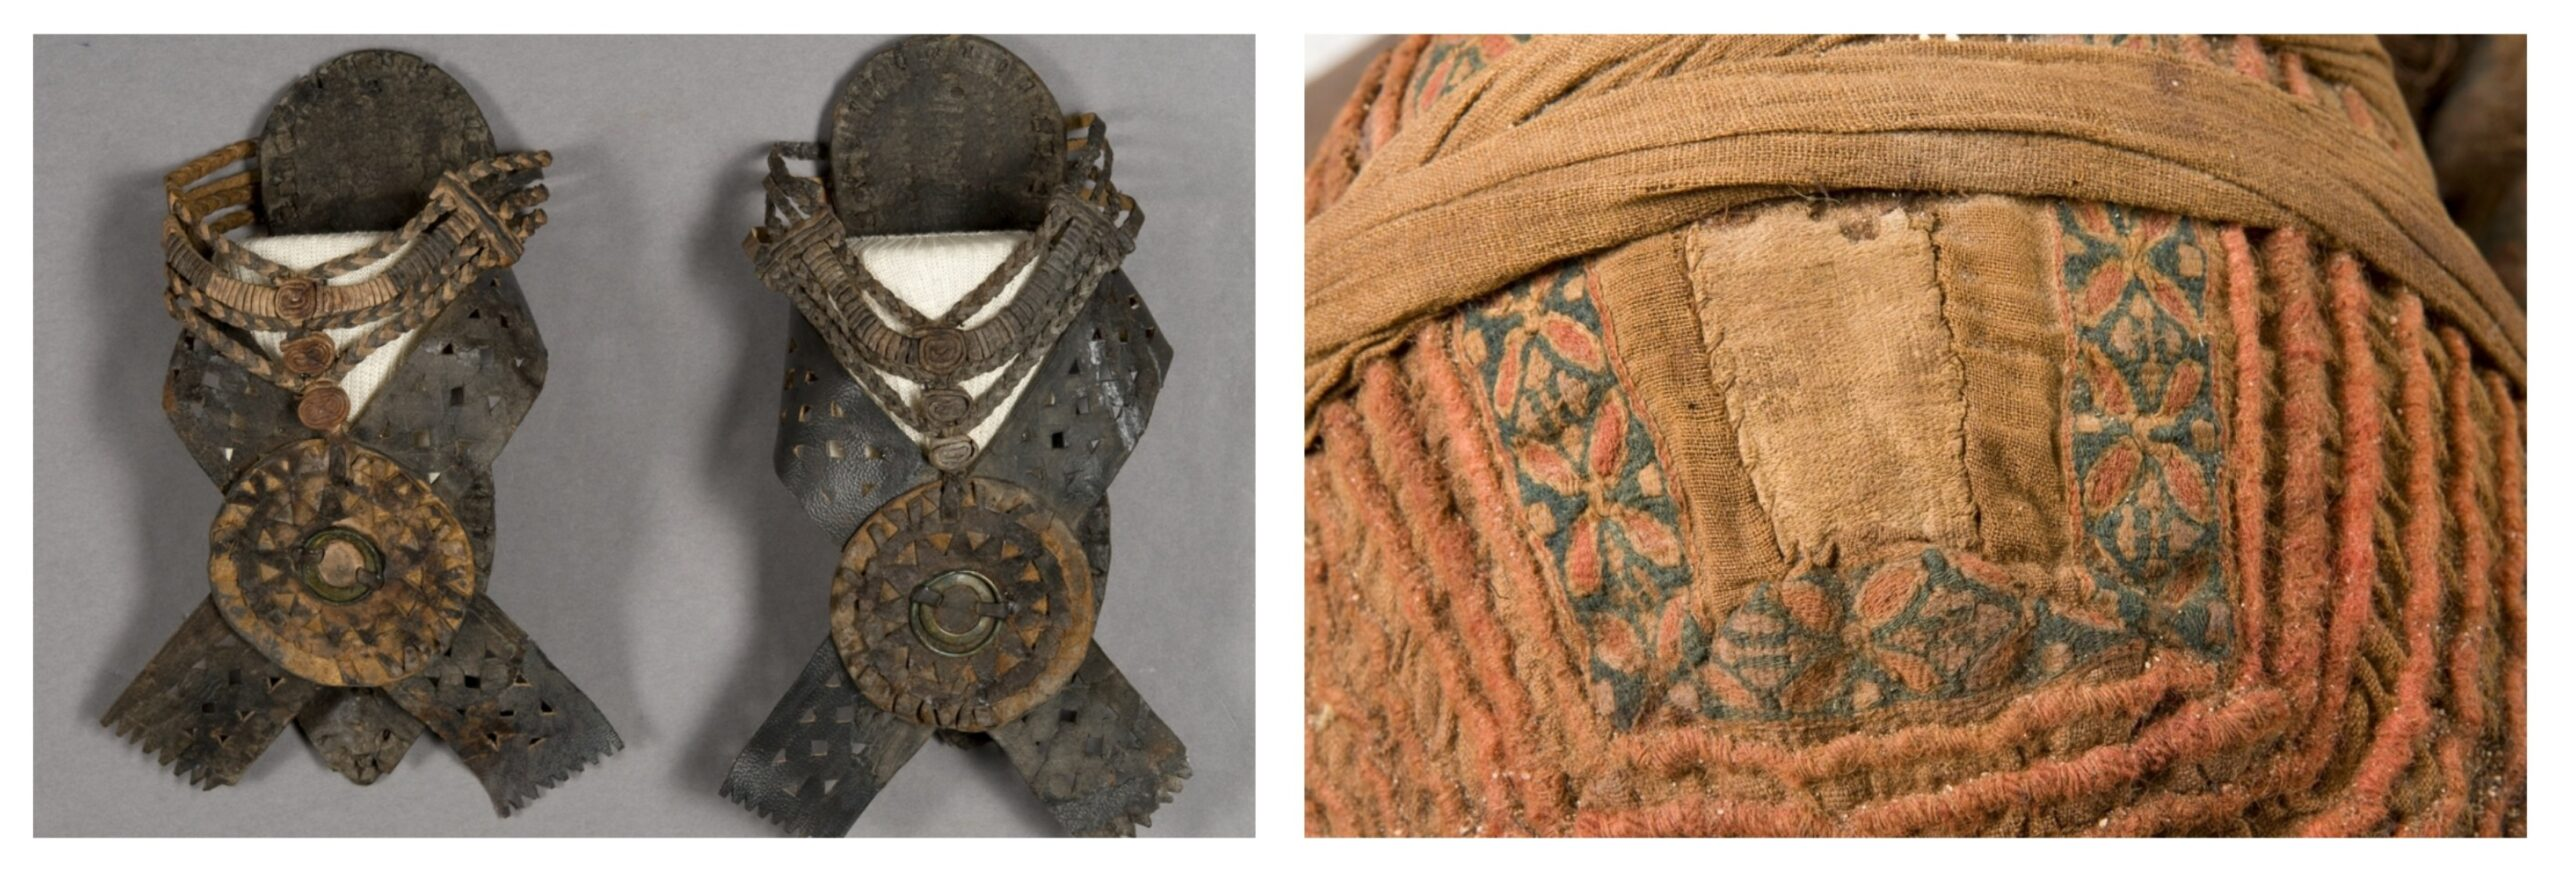 The clothes of the prophetess and the textile element